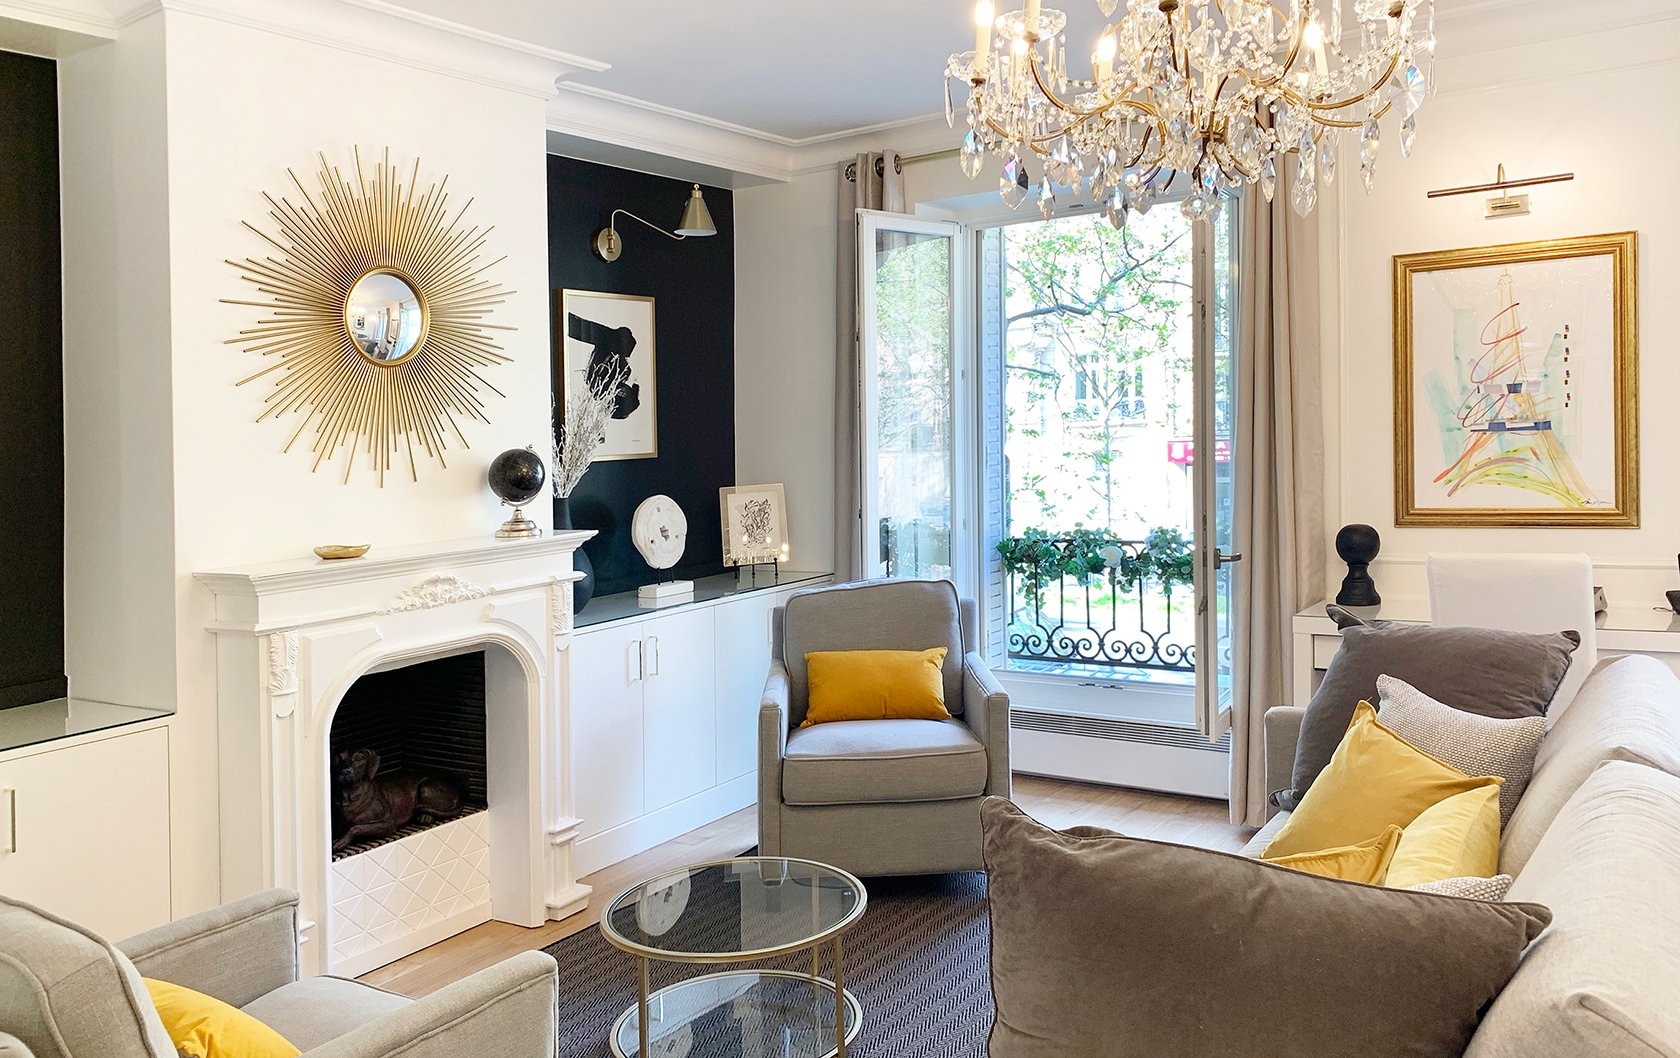 A Glam Before & After Transformation of the Beaujolais Apartment